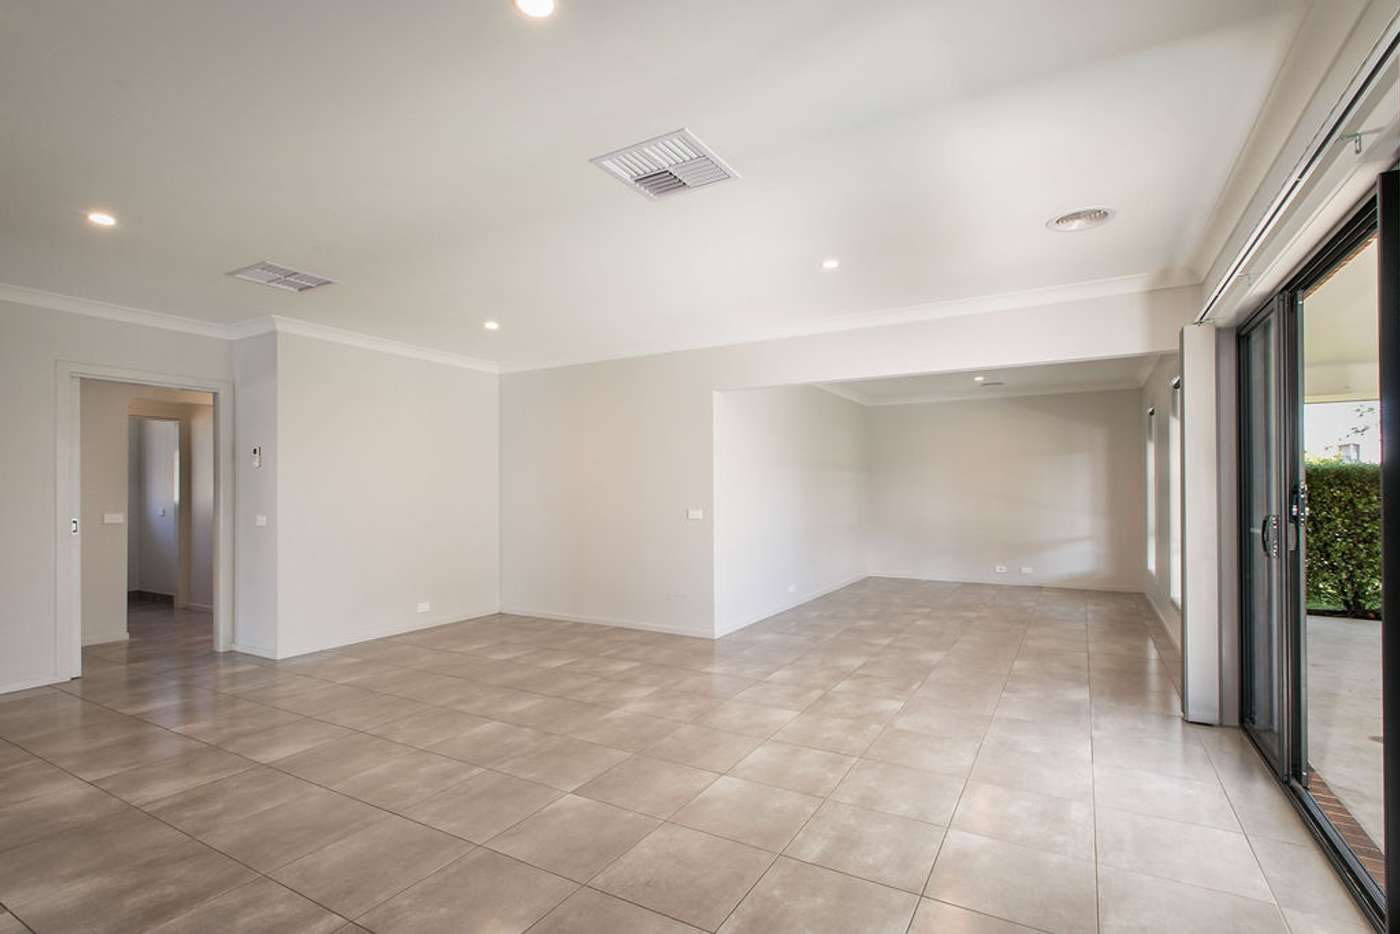 Sixth view of Homely house listing, 7 Derrick Street, Wodonga VIC 3690